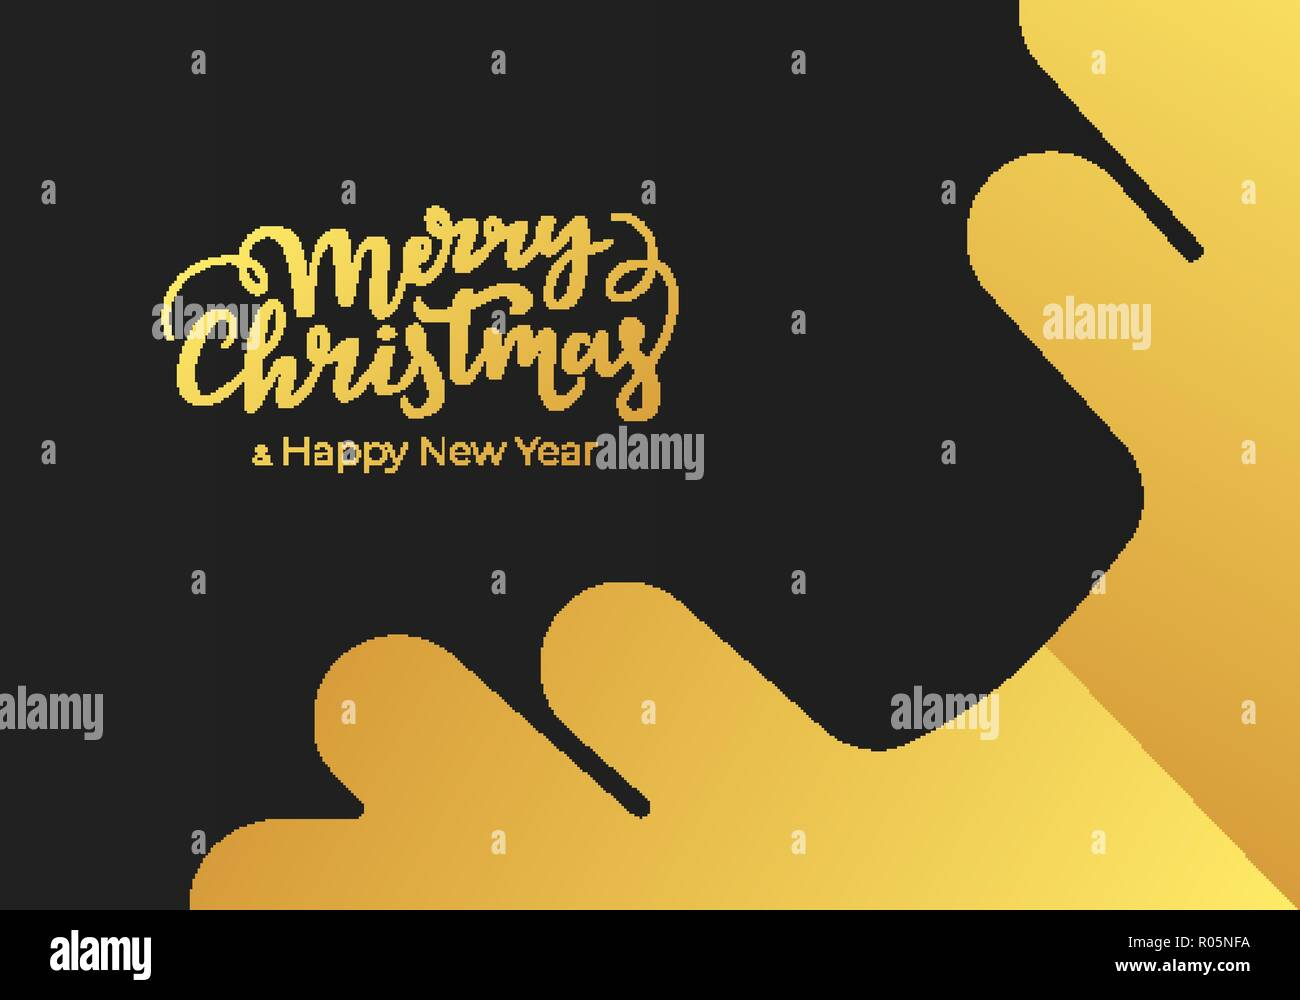 Christmas and New Year greeting card made of black paper background and decorated with gold lettering and snowflake. Postcard design for winter holida - Stock Image